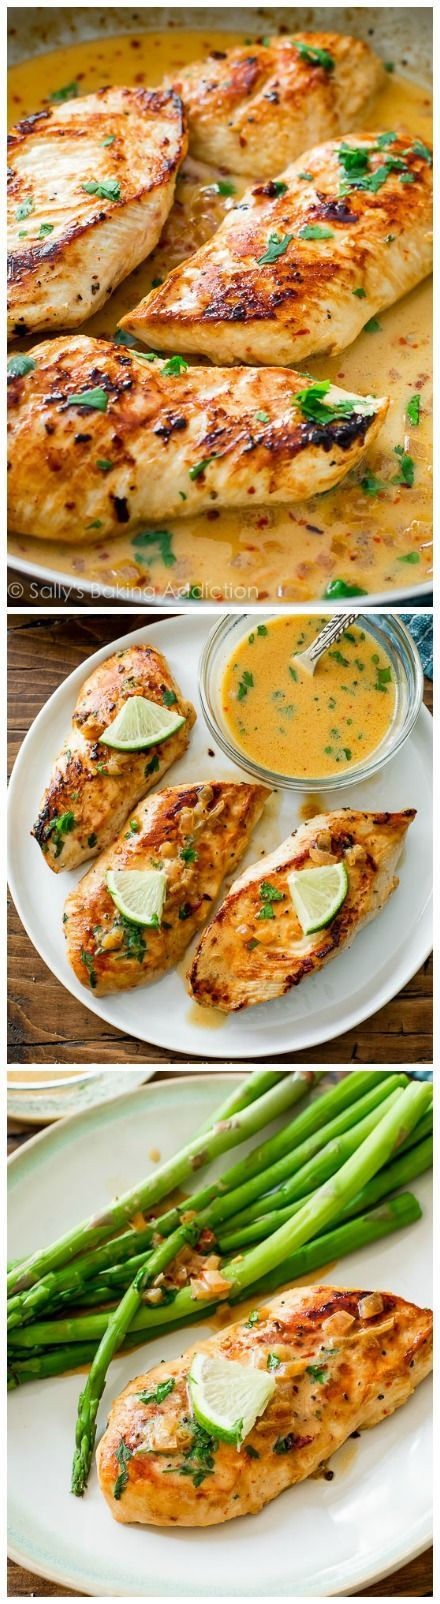 Skillet Chicken with Creamy Cilantro Lime Sauce -- an easy-peasy dinner idea!  http://sallysbakingaddiction.com/2015/07/08/skillet-chicken-with-creamy-cilantro-lime-sauce/